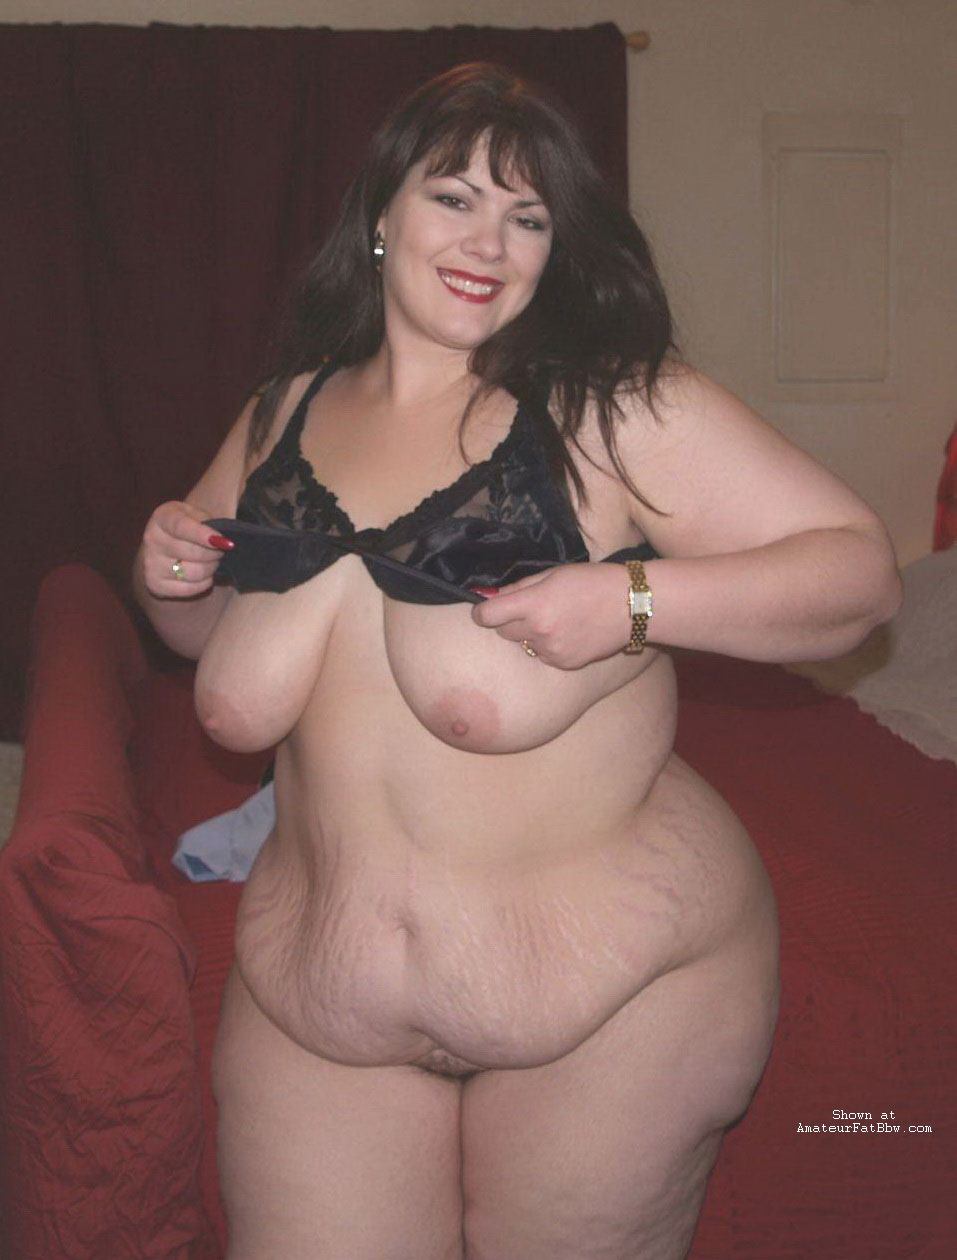 Remarkable, fat mature women share your